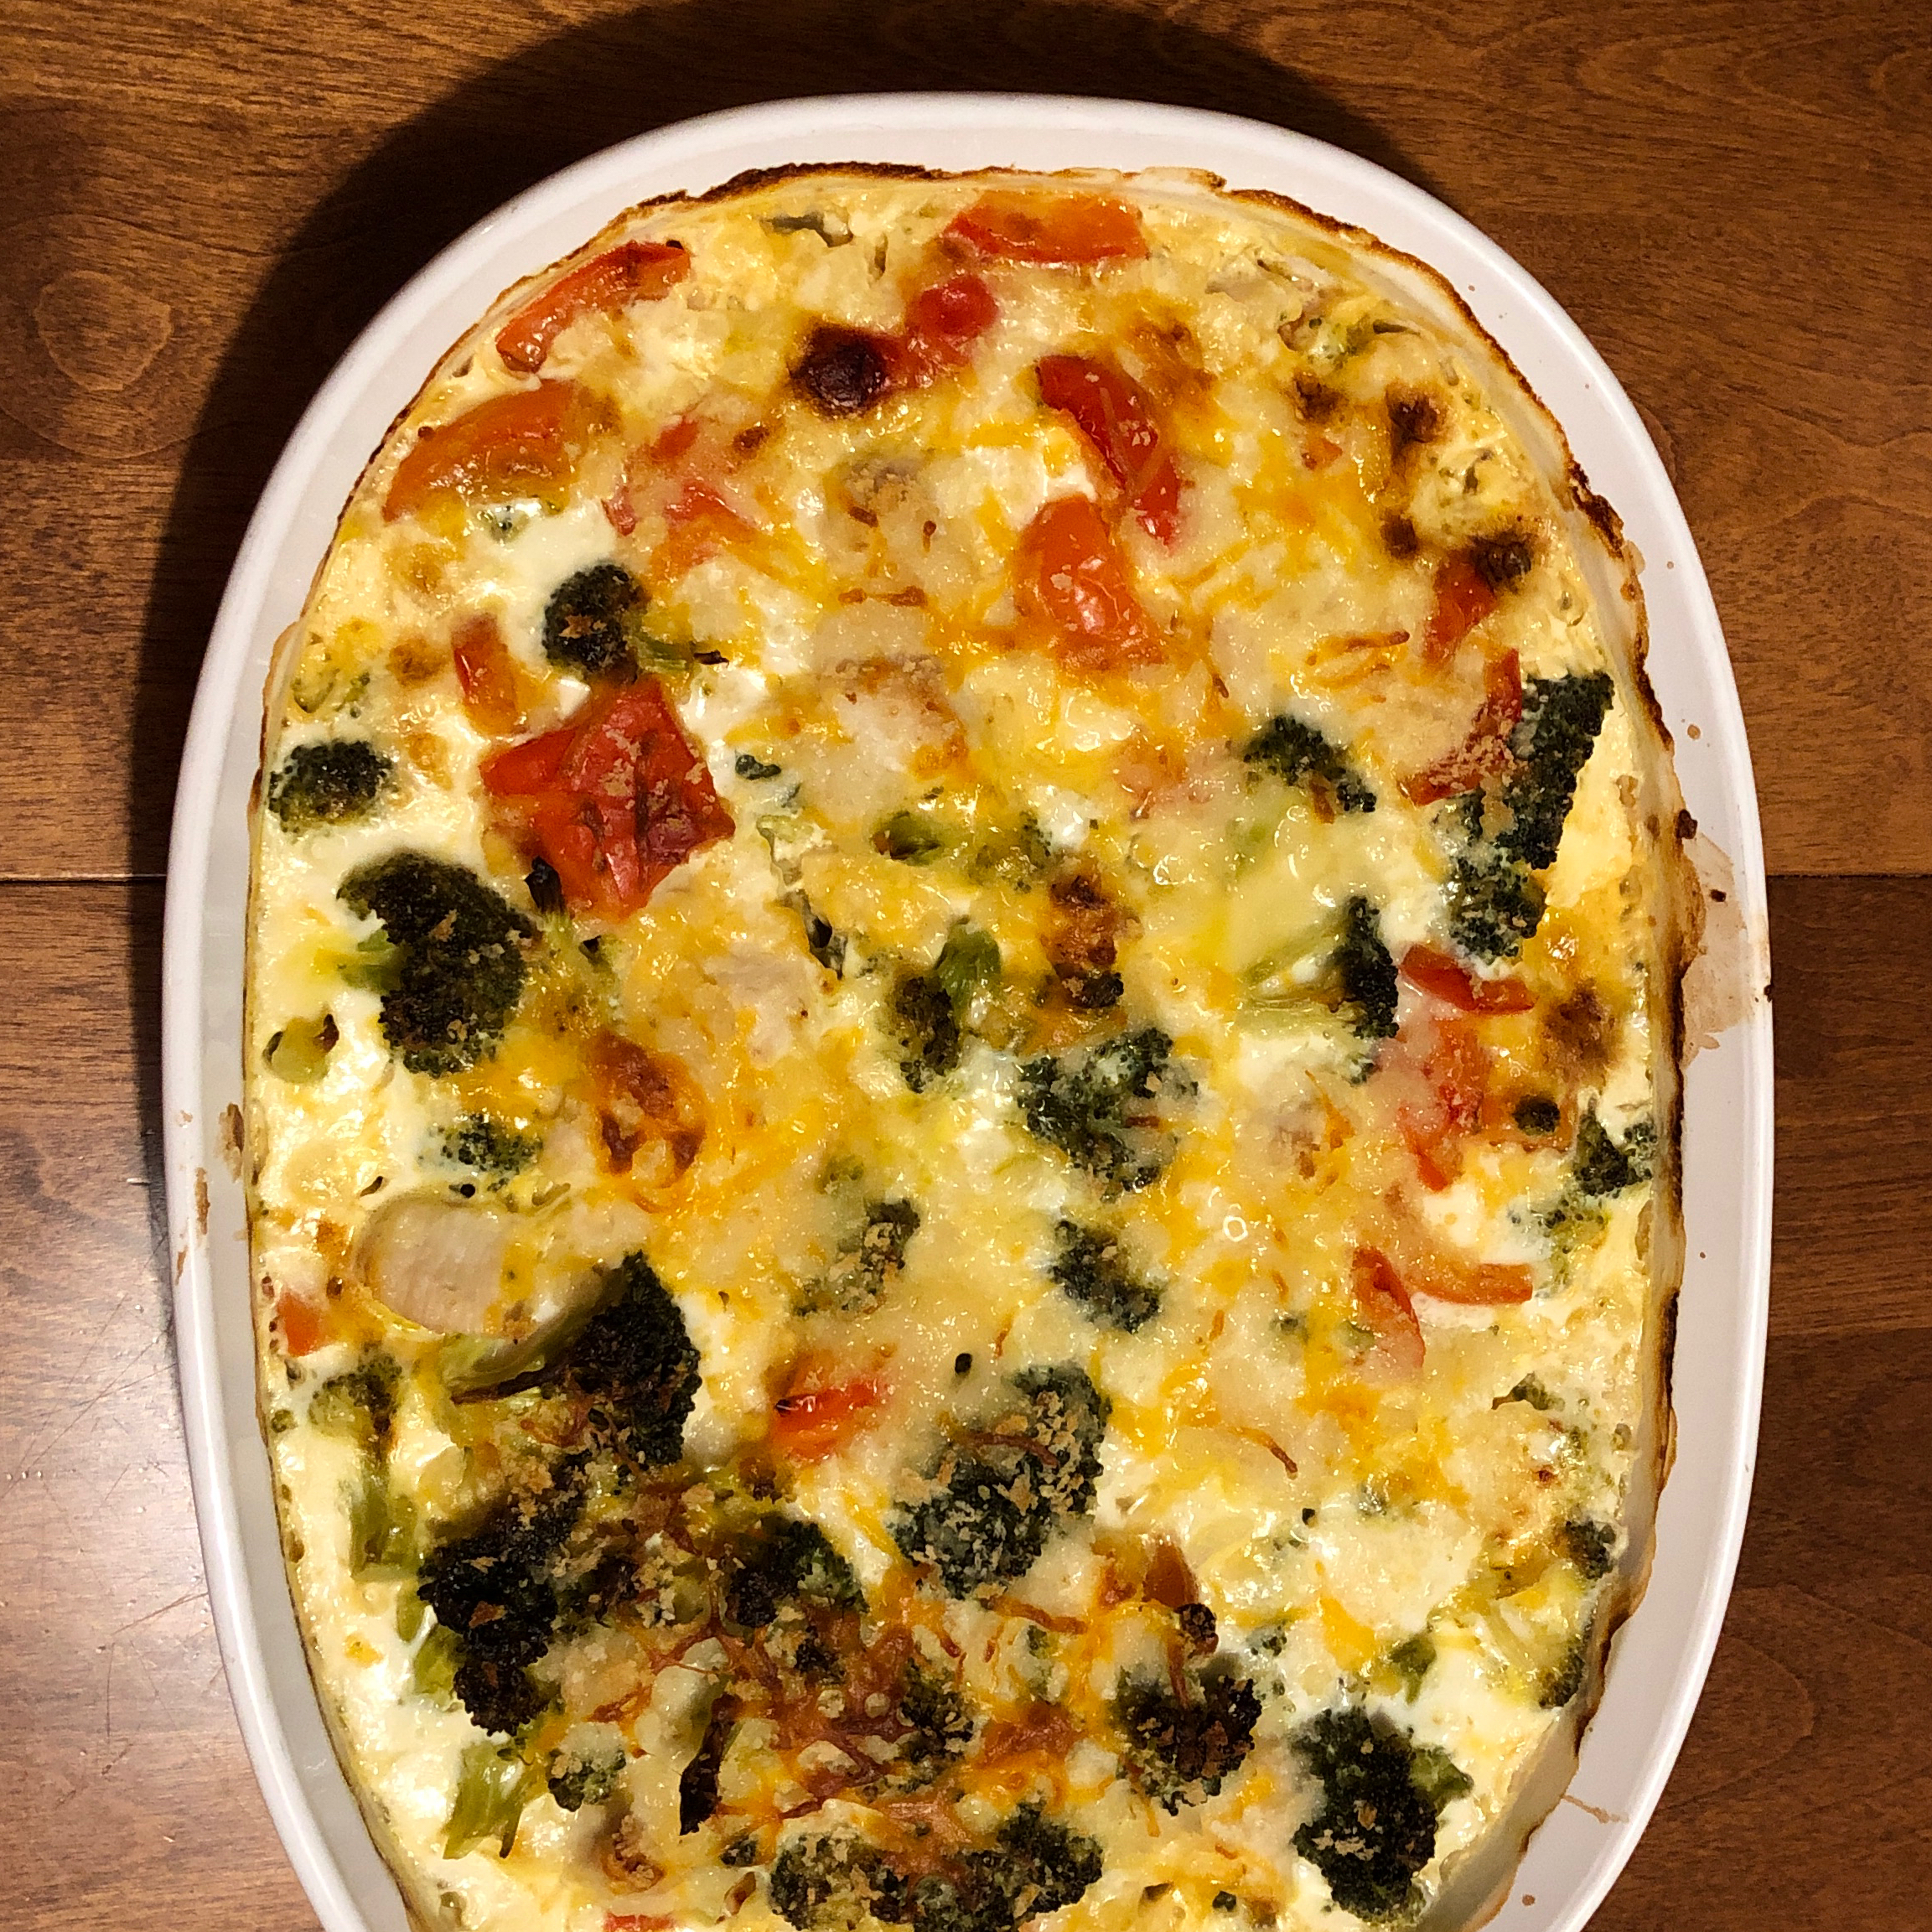 Cheddar Broccoli and Chicken Casserole from Country Crock®